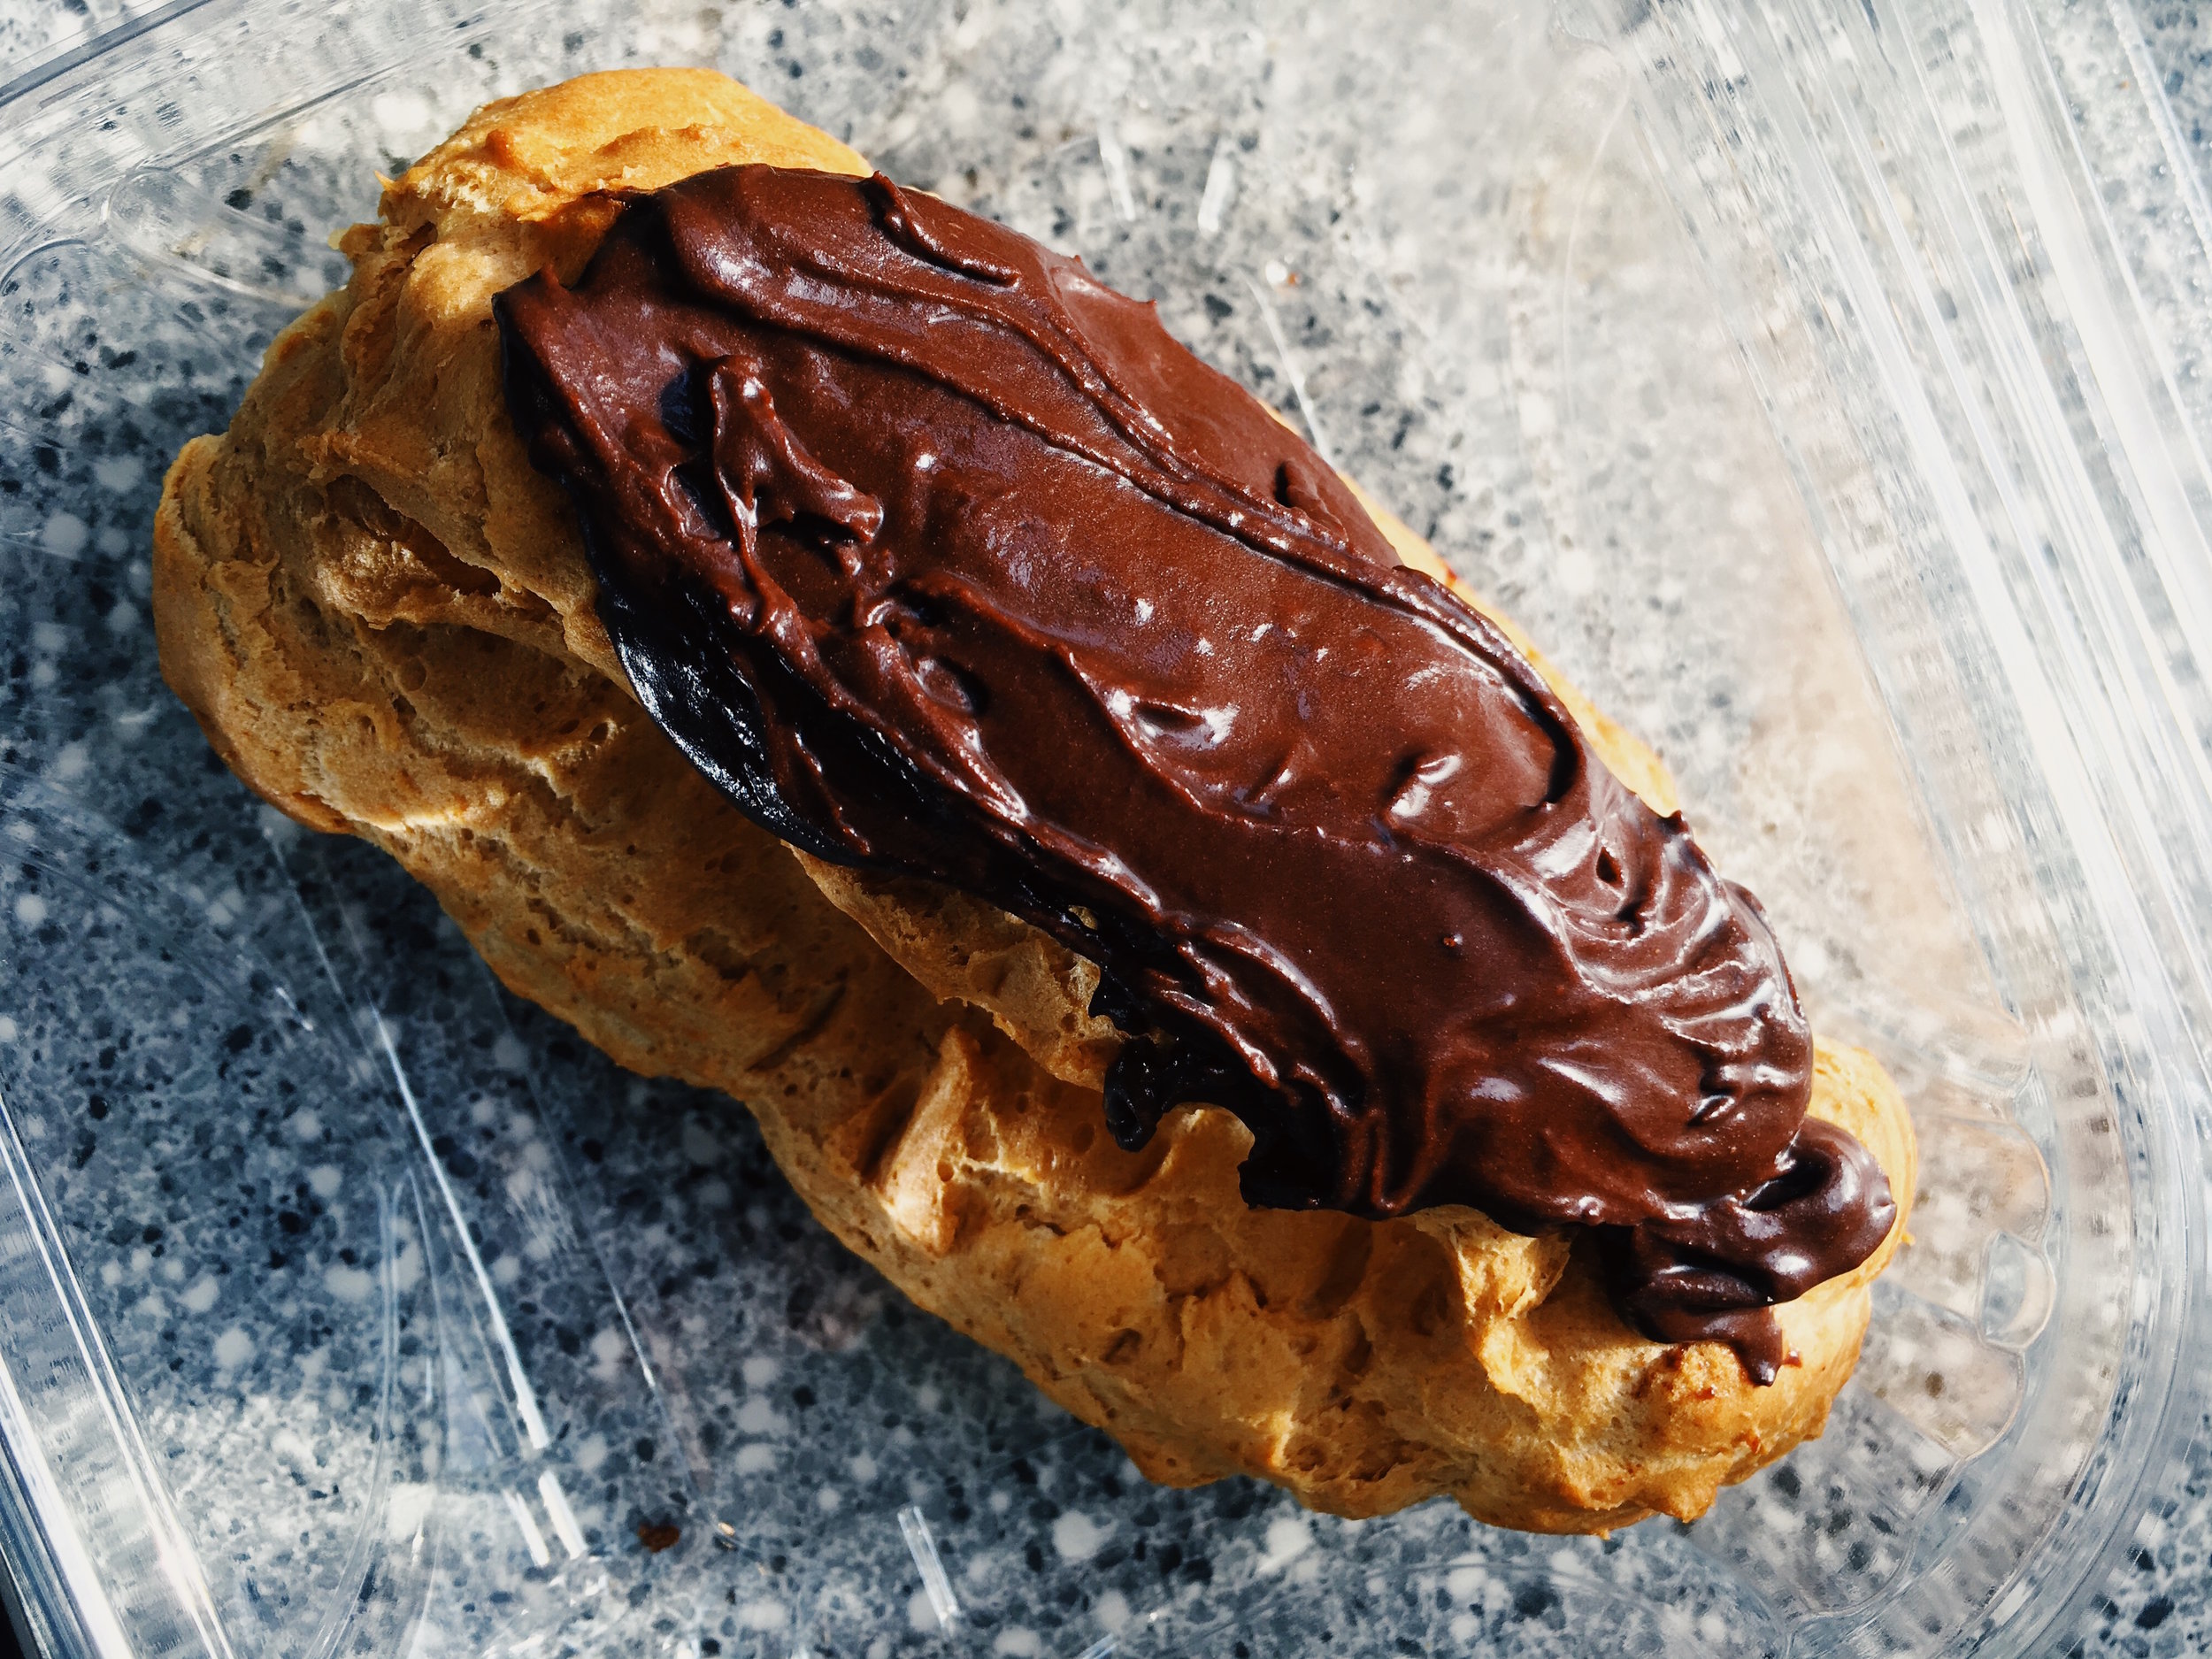 One of Deb's newly famous chocolate eclairs